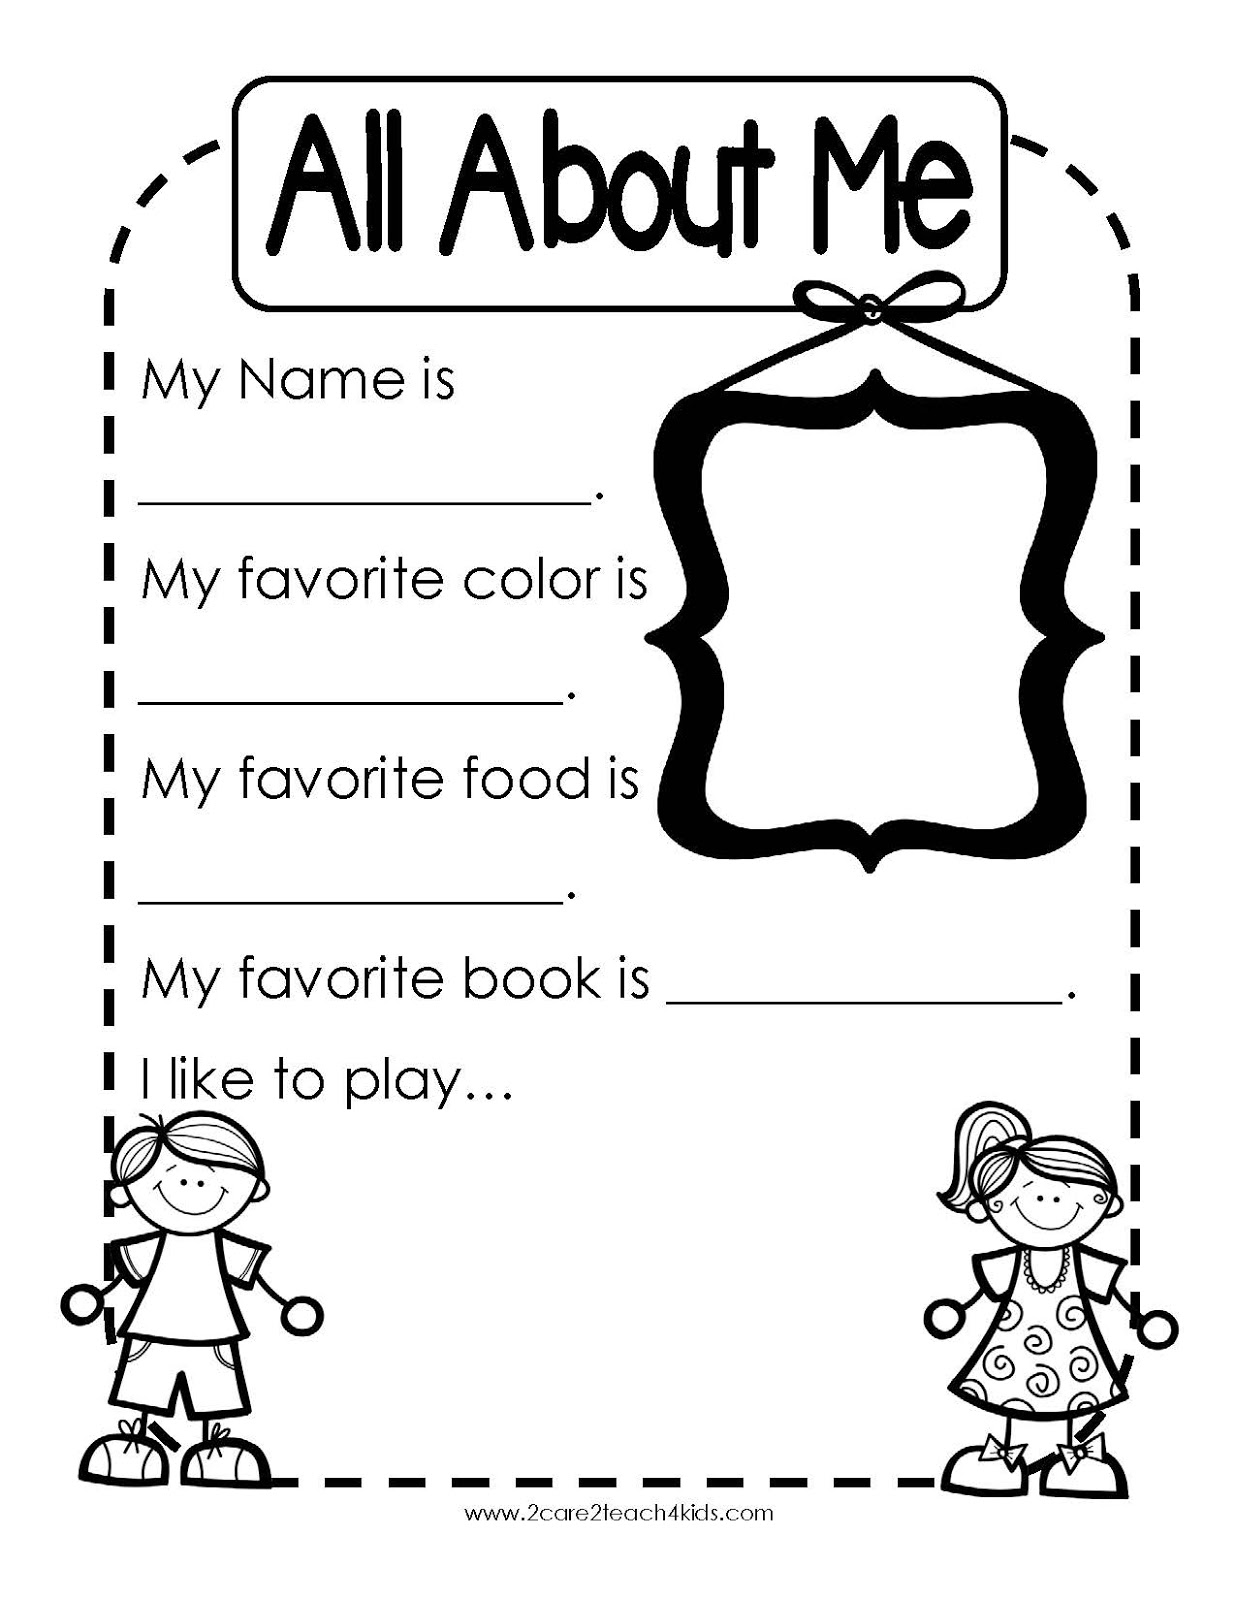 Astounding image within all about me printable preschool